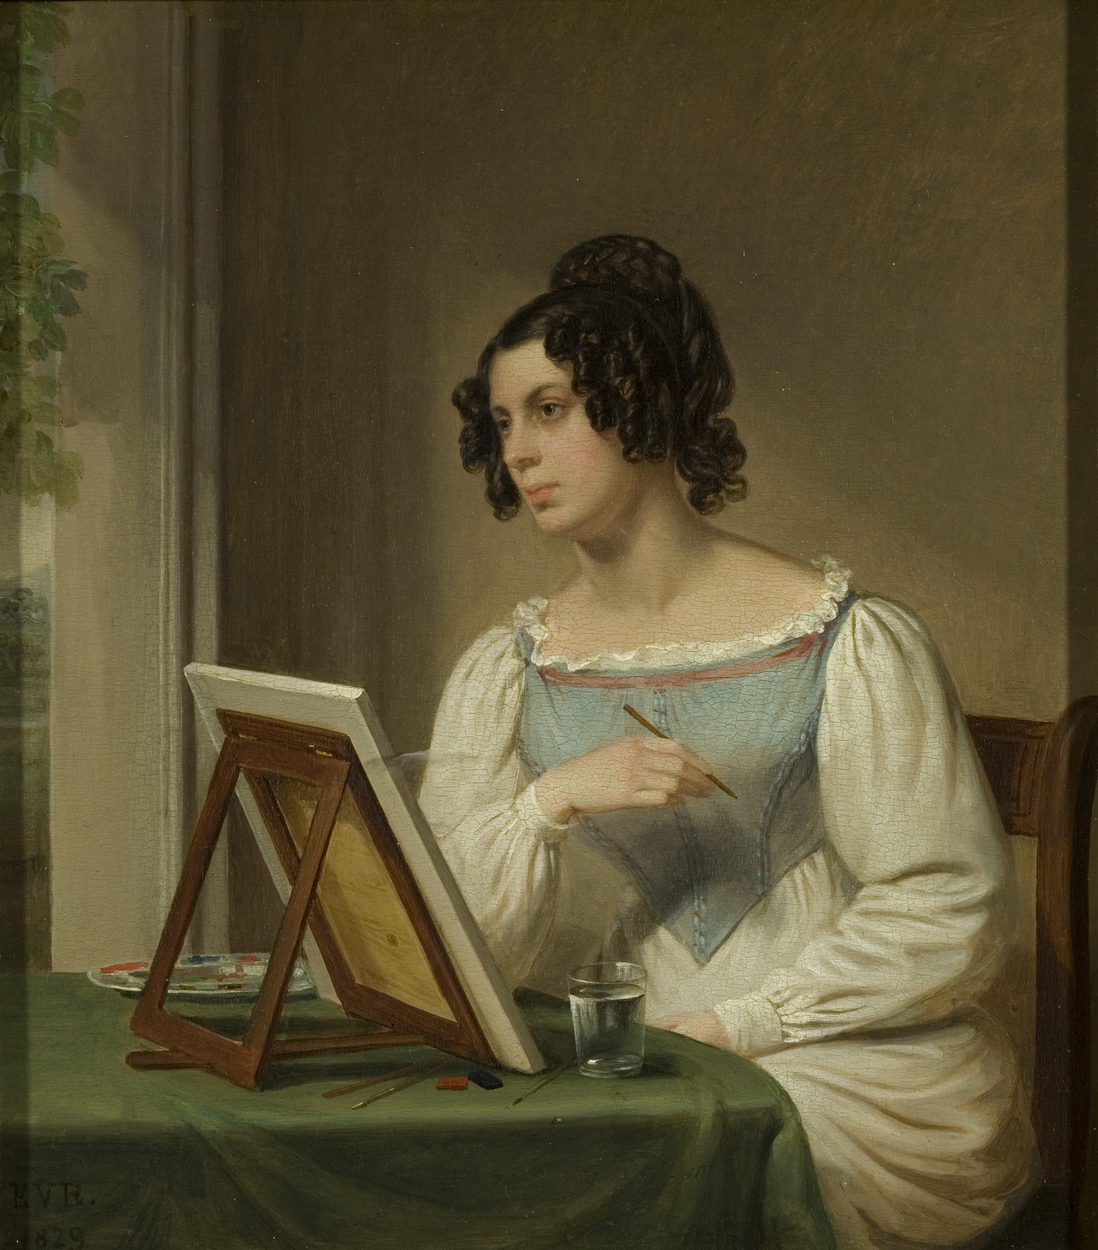 Painting of woman drawing